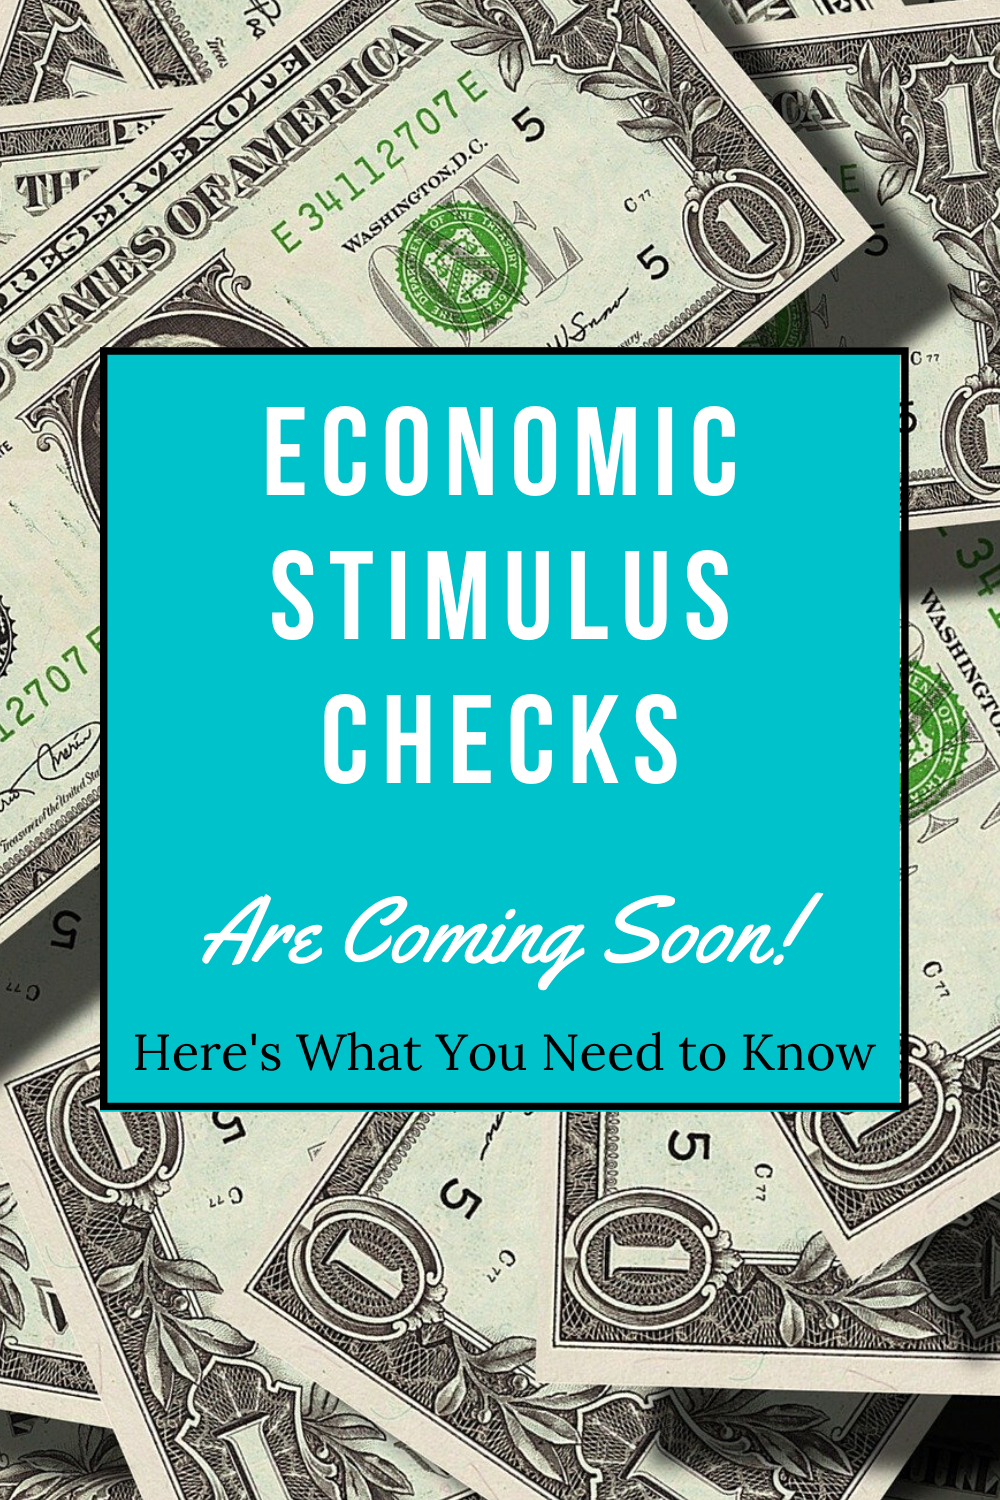 Economic Stimulus Checks are coming soon. When will you